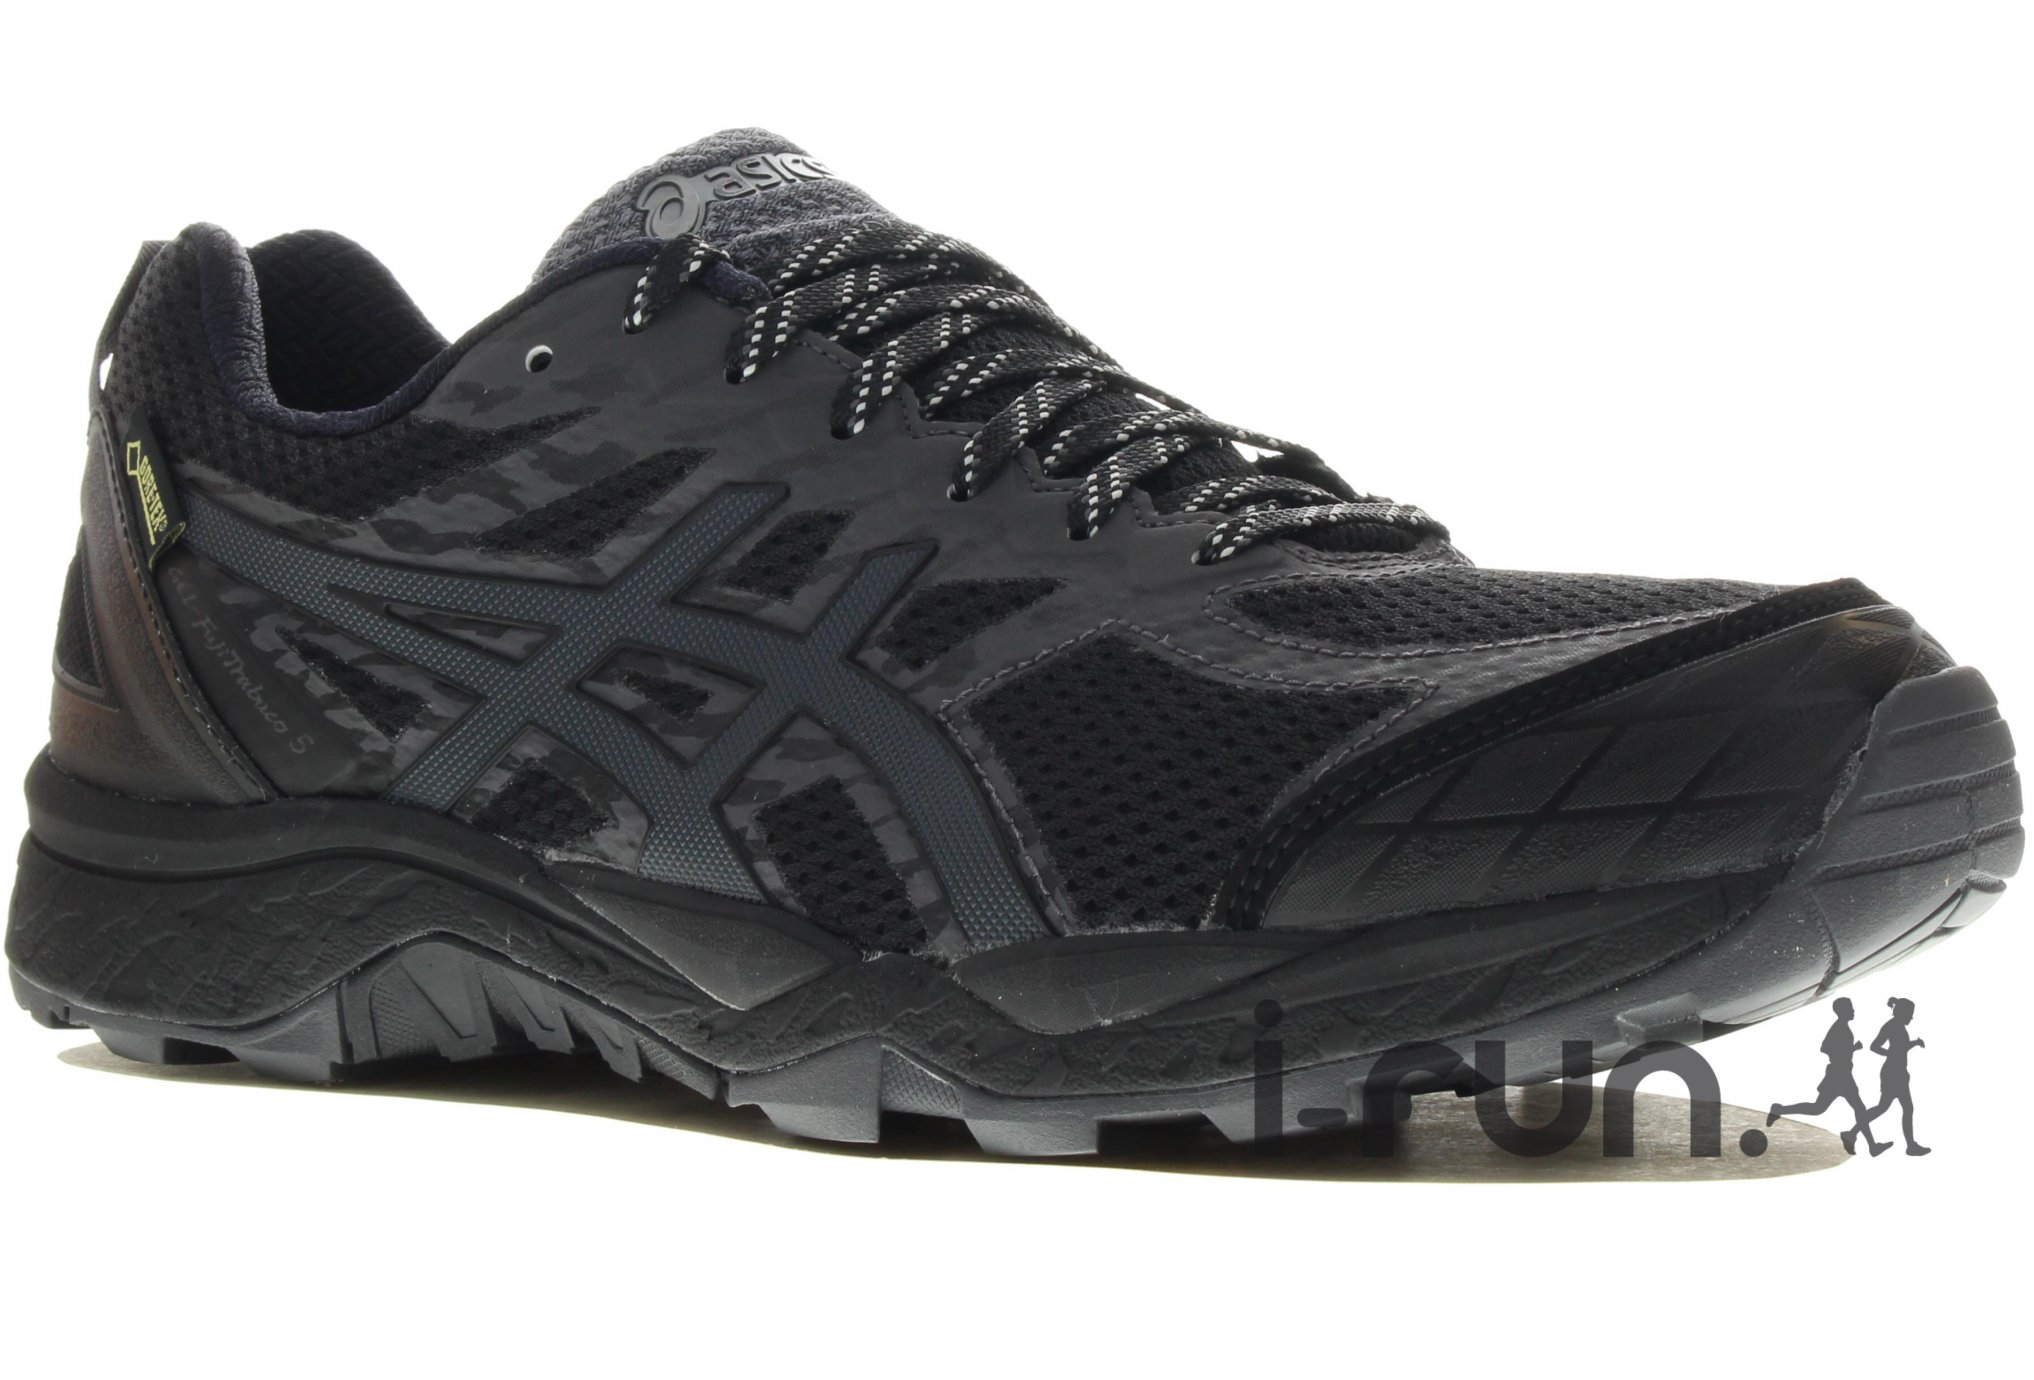 asics gore tex chaussures. Black Bedroom Furniture Sets. Home Design Ideas